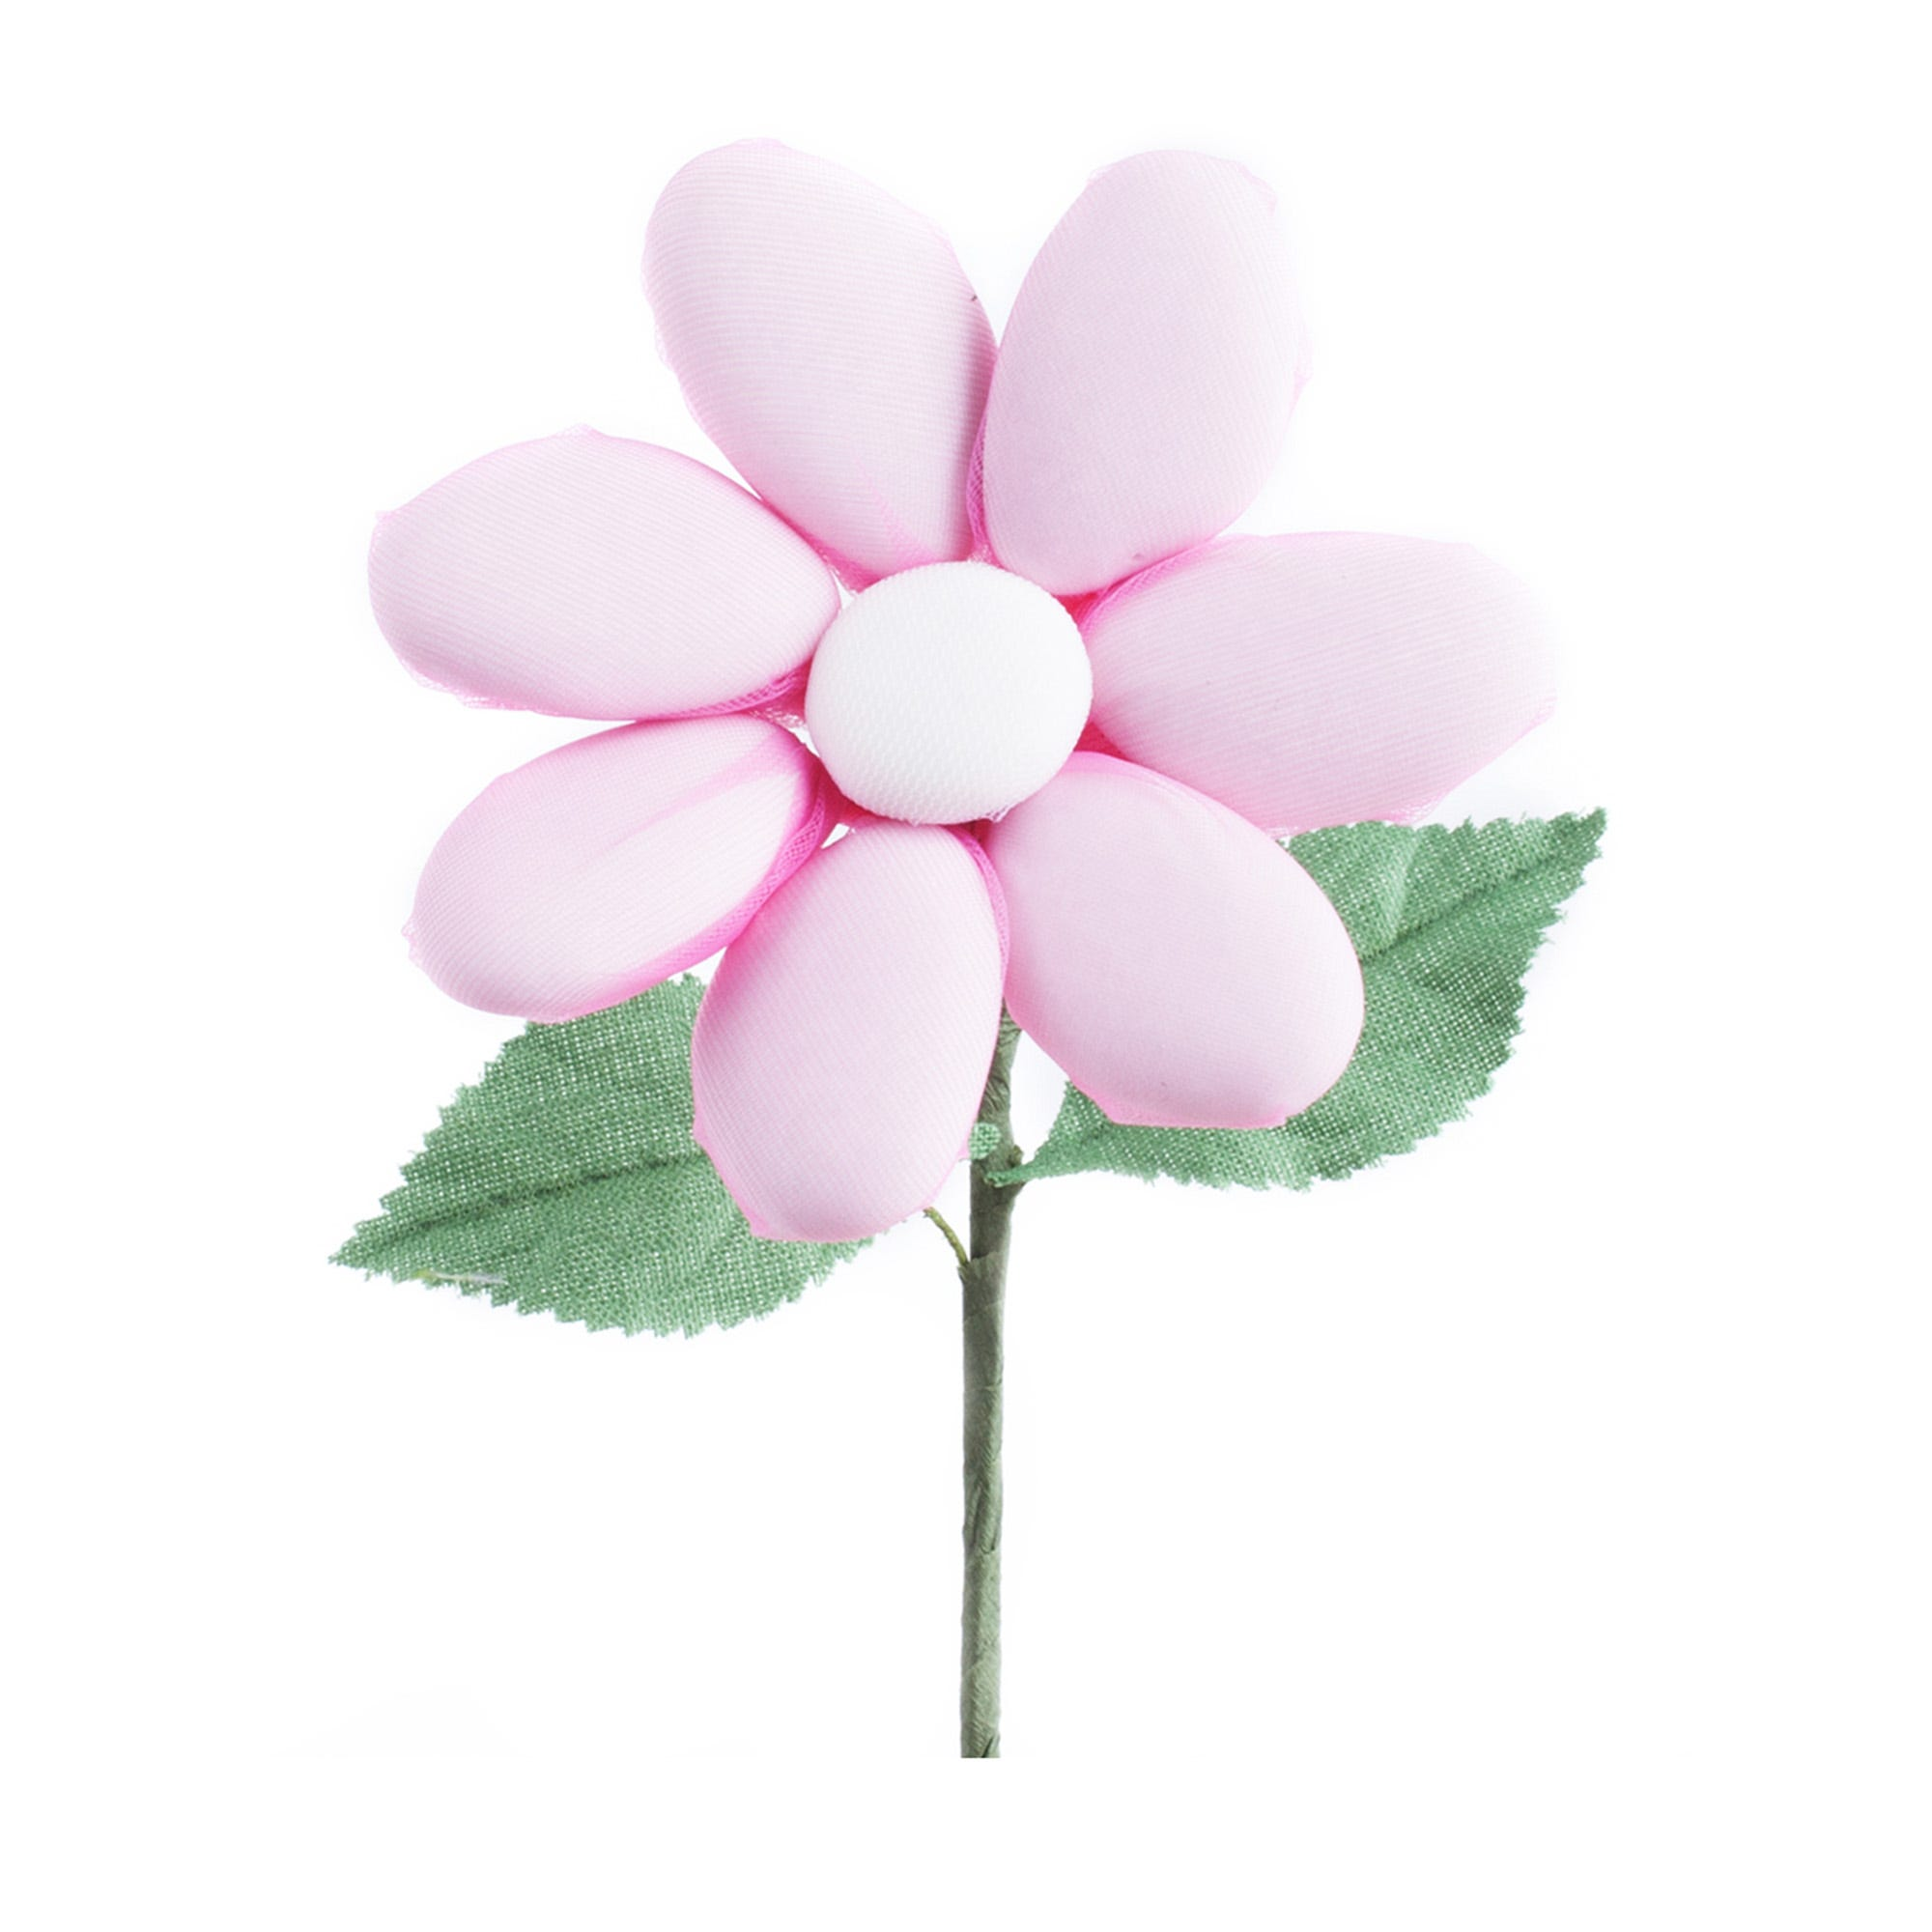 Candy Flowers - Pink Daisy